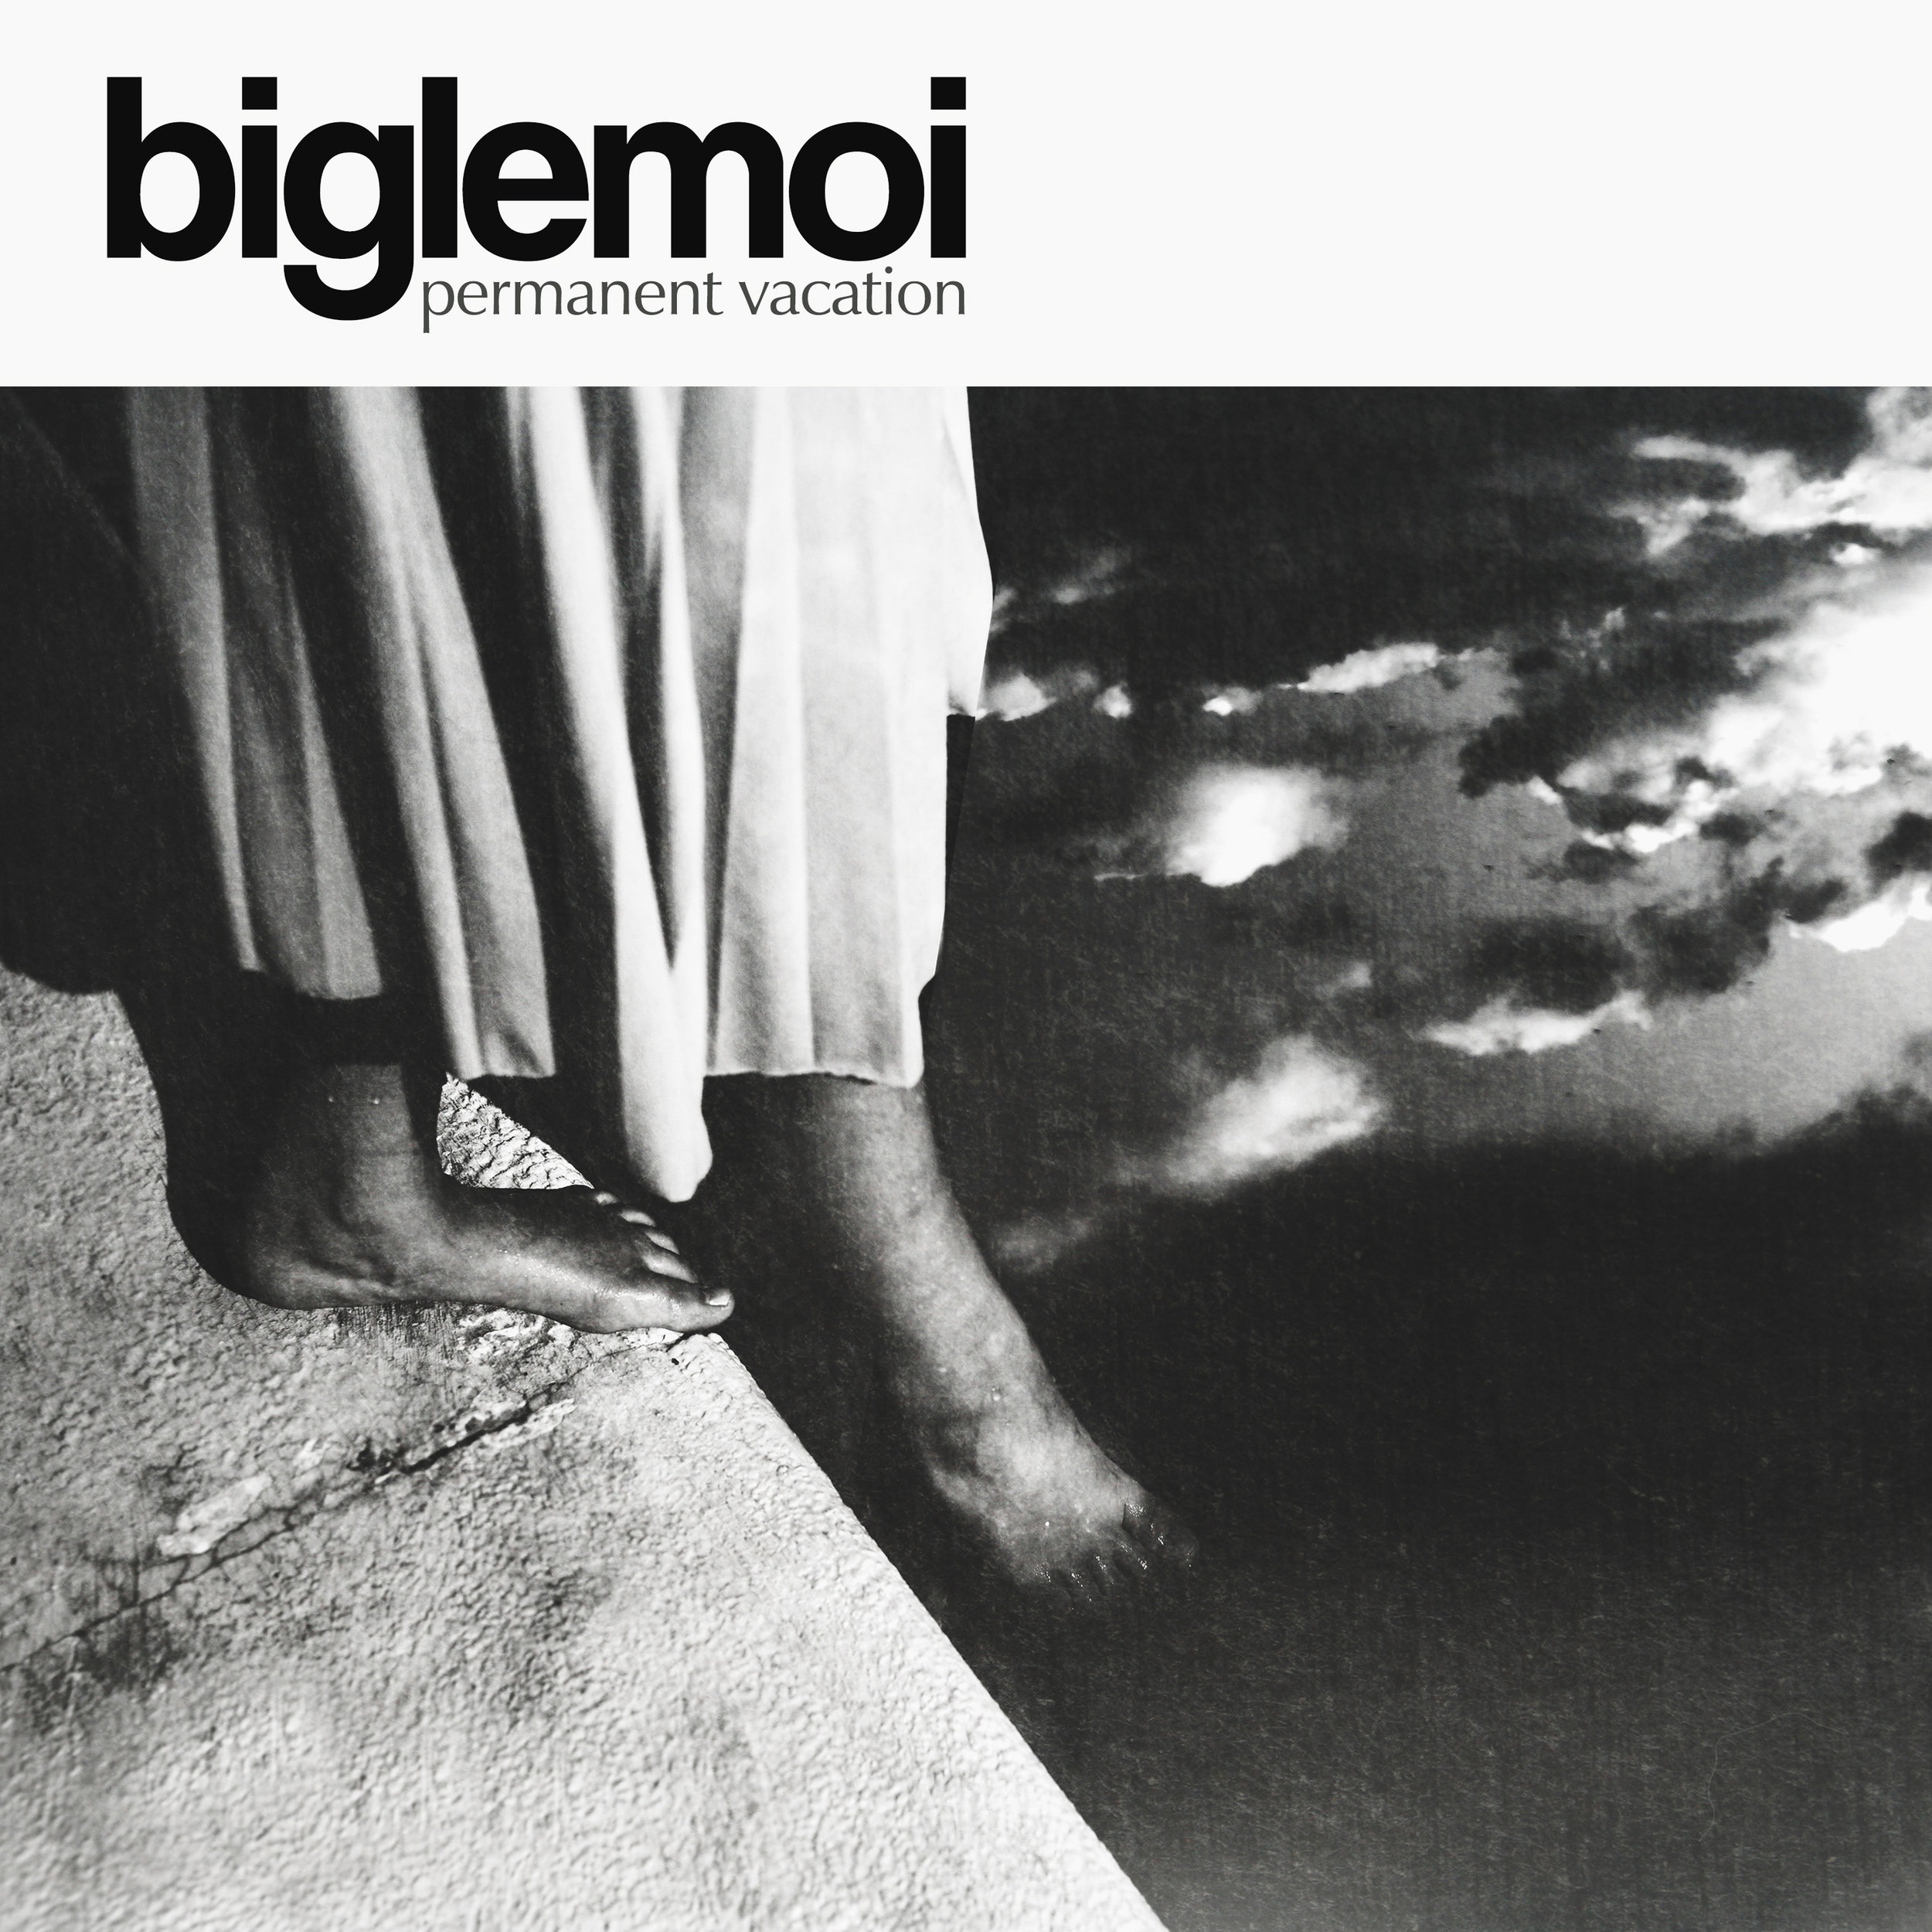 Biglemoi - Permanent Vacation album cover